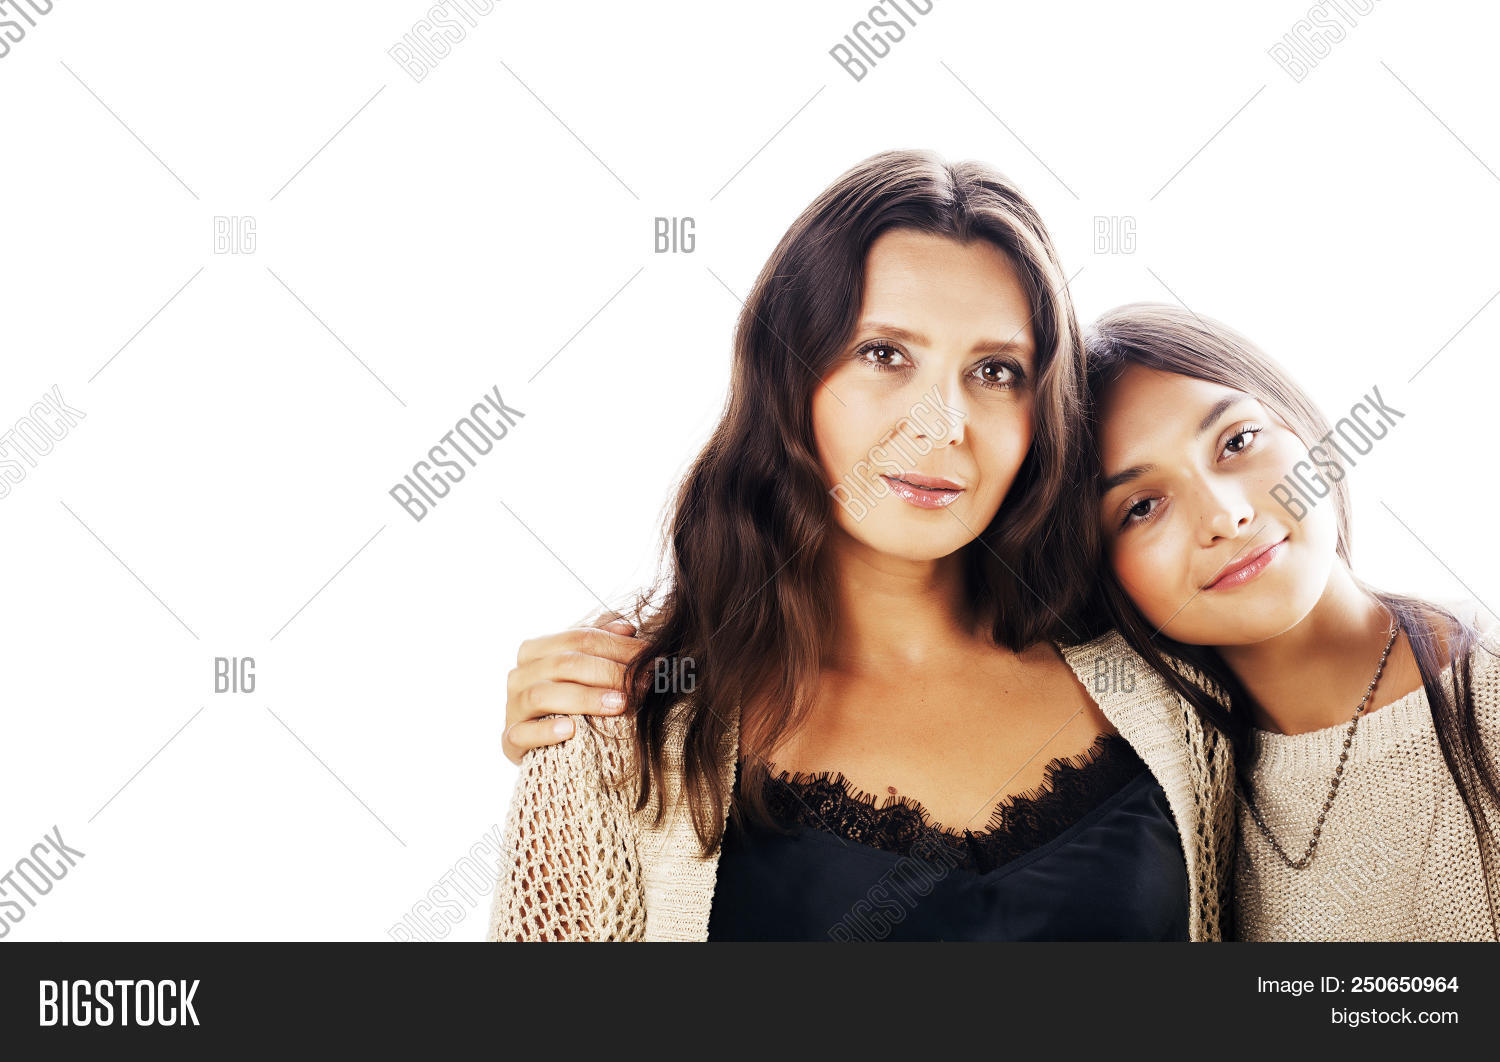 Cute Pretty Teen Daughter With Real Mature Mother Hugging, Fashion Style  Brunette Makeup Close Up